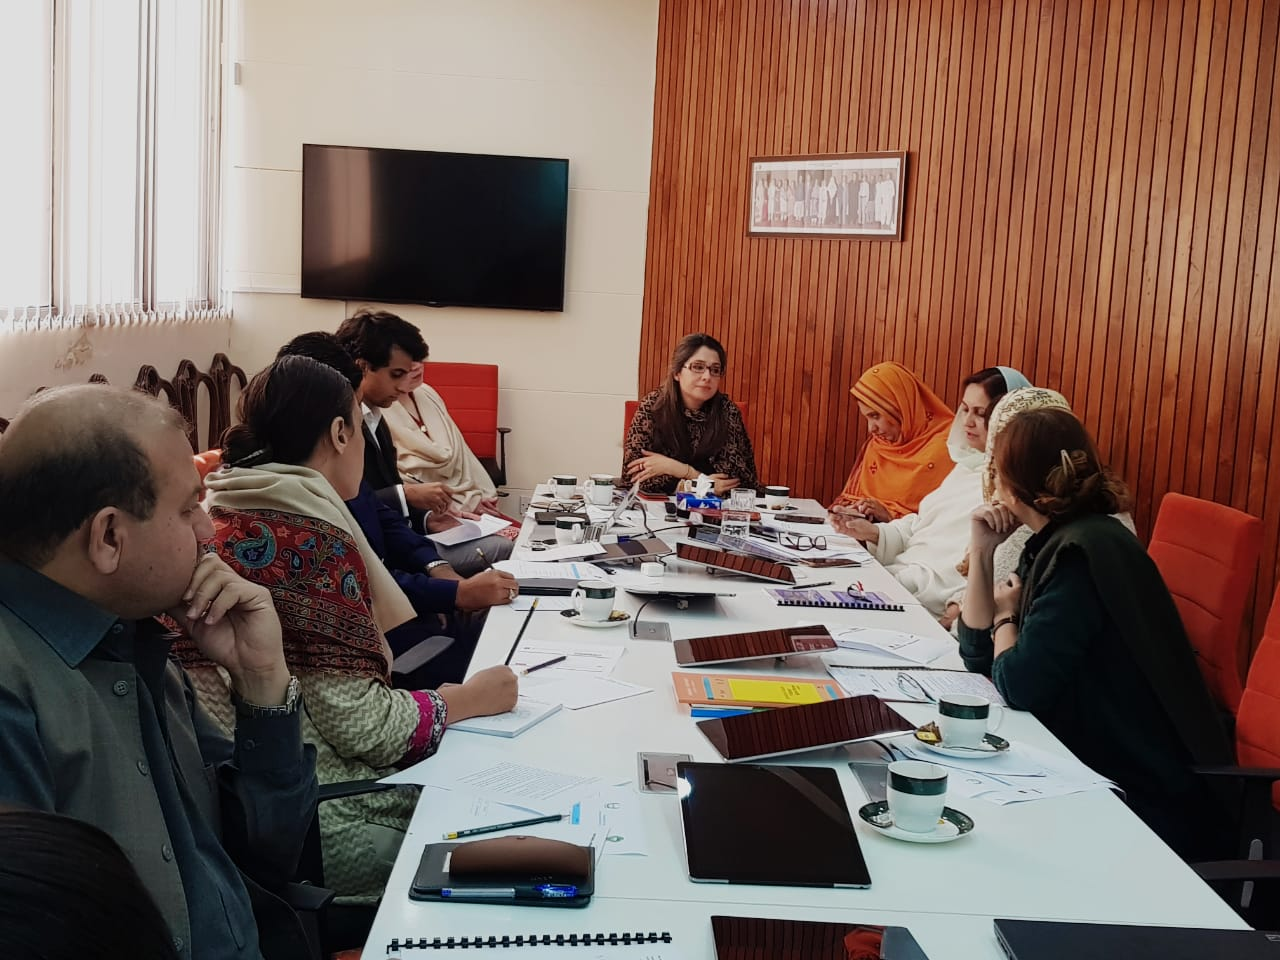 10 March 2020: CONSULTATION WITH STAKEHOLDERS ON SDGs 5 – GENDER EQUALITY